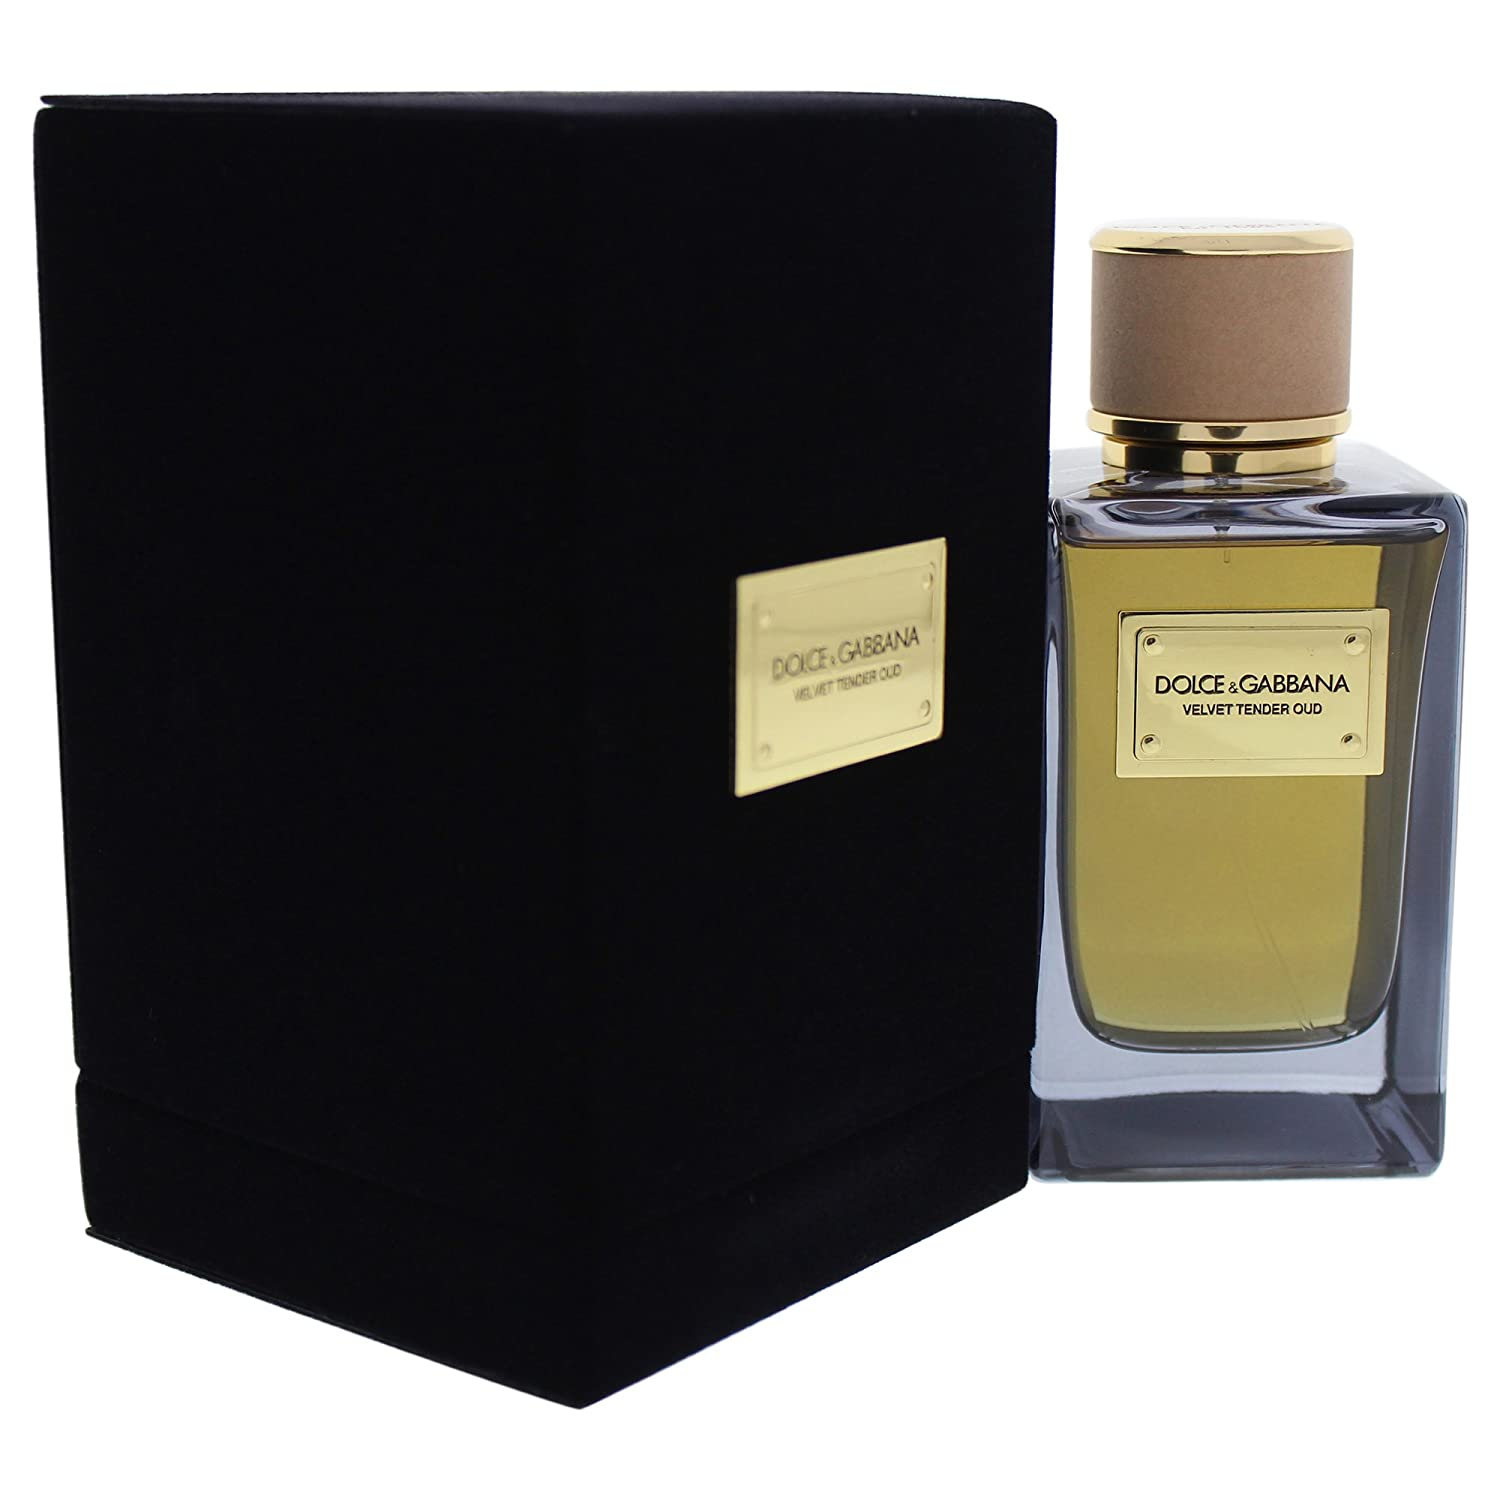 Amazon.com   Dolce   Gabbana Velvet Tender Oud Eau de Parfum Spray, 5.0  Ounce   Beauty a9d0463af11d